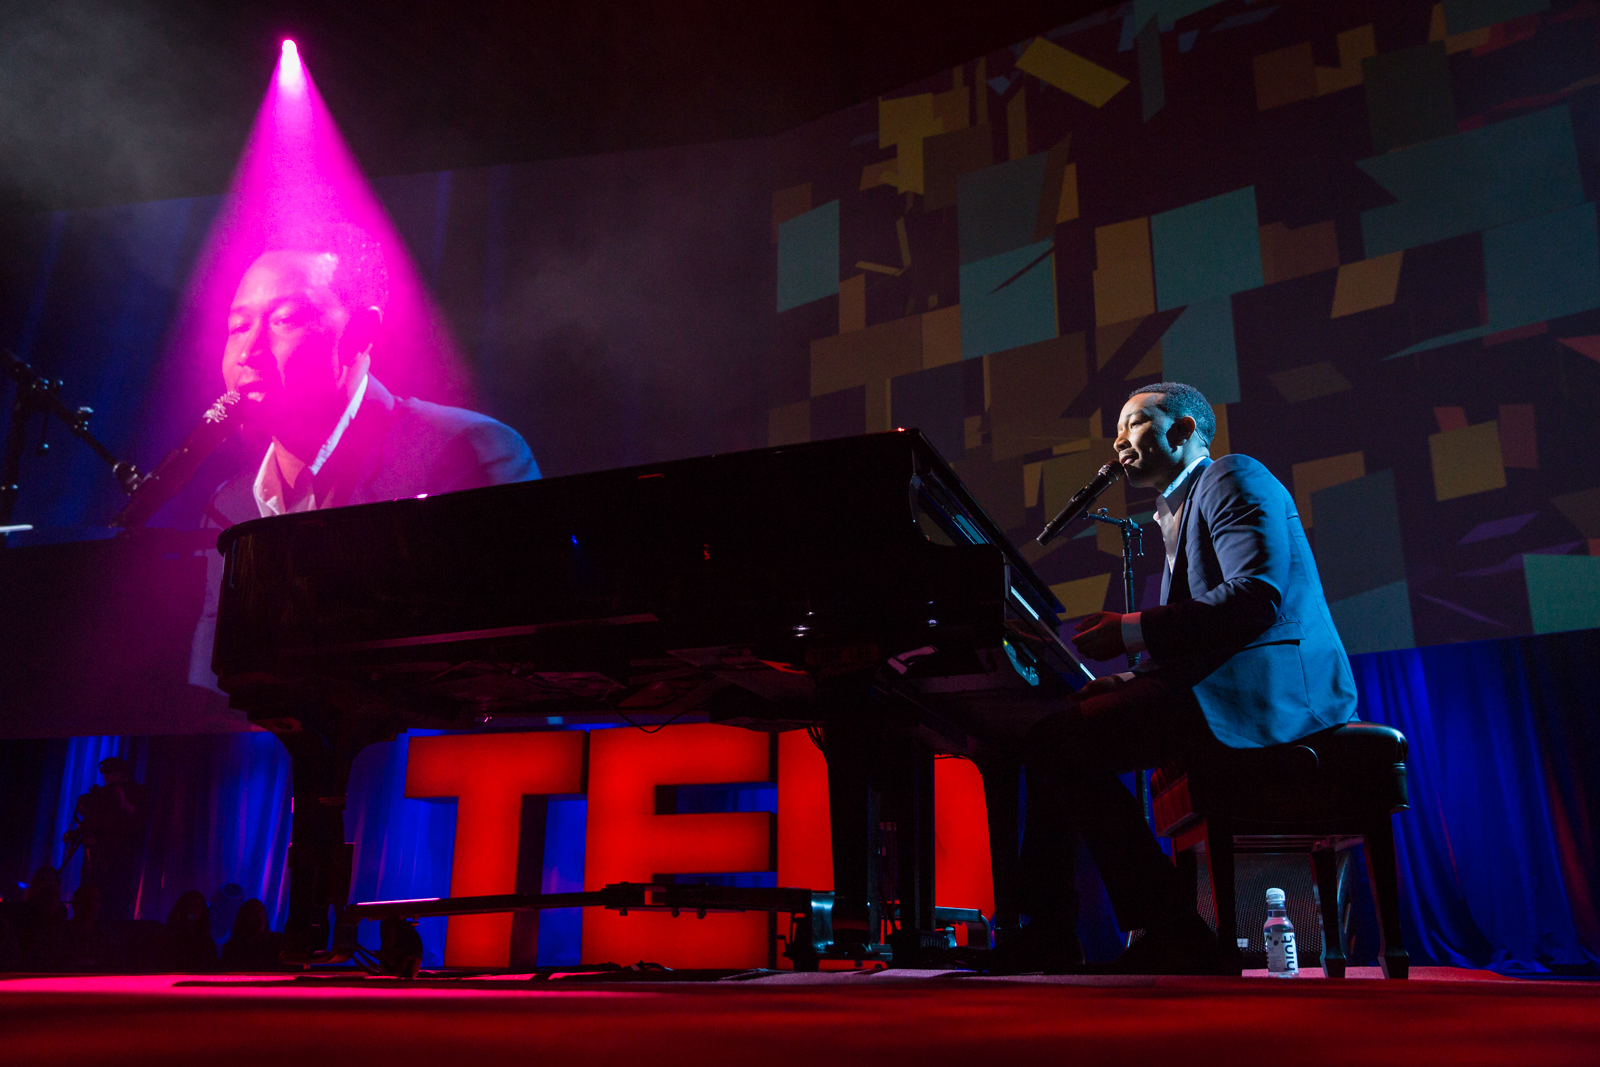 John Legend performs at TED2016 - Dream, February 15-19, 2016, Vancouver Convention Center, Vancouver, Canada. Photo: Bret Hartman / TED